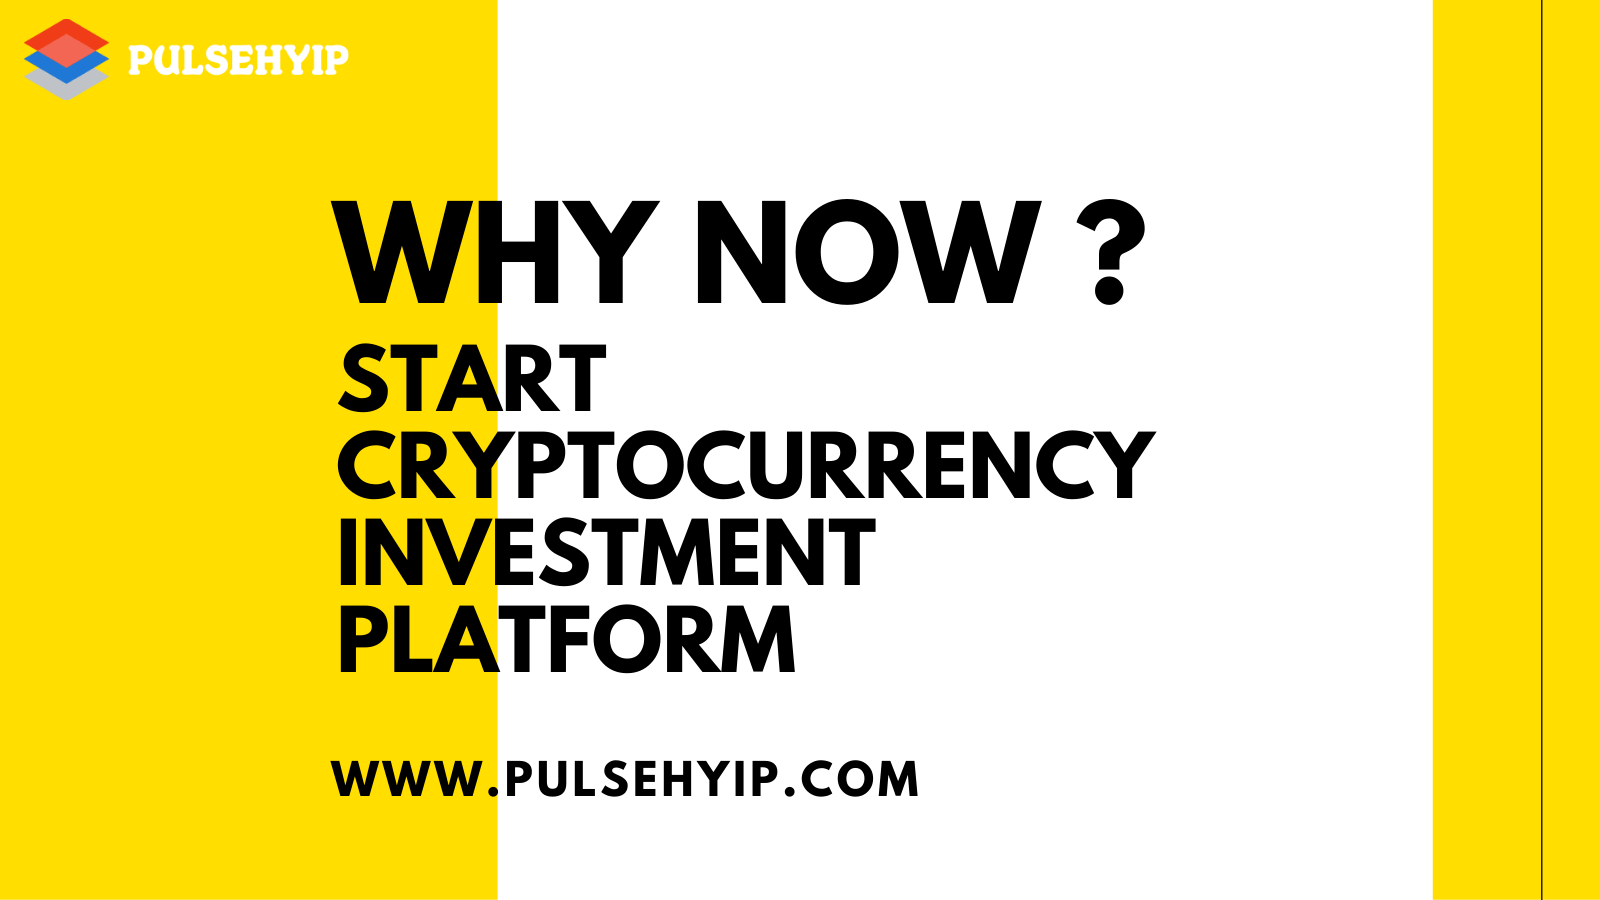 Why Now Is The Right Time To Start Cryptocurrency Investment Platform?